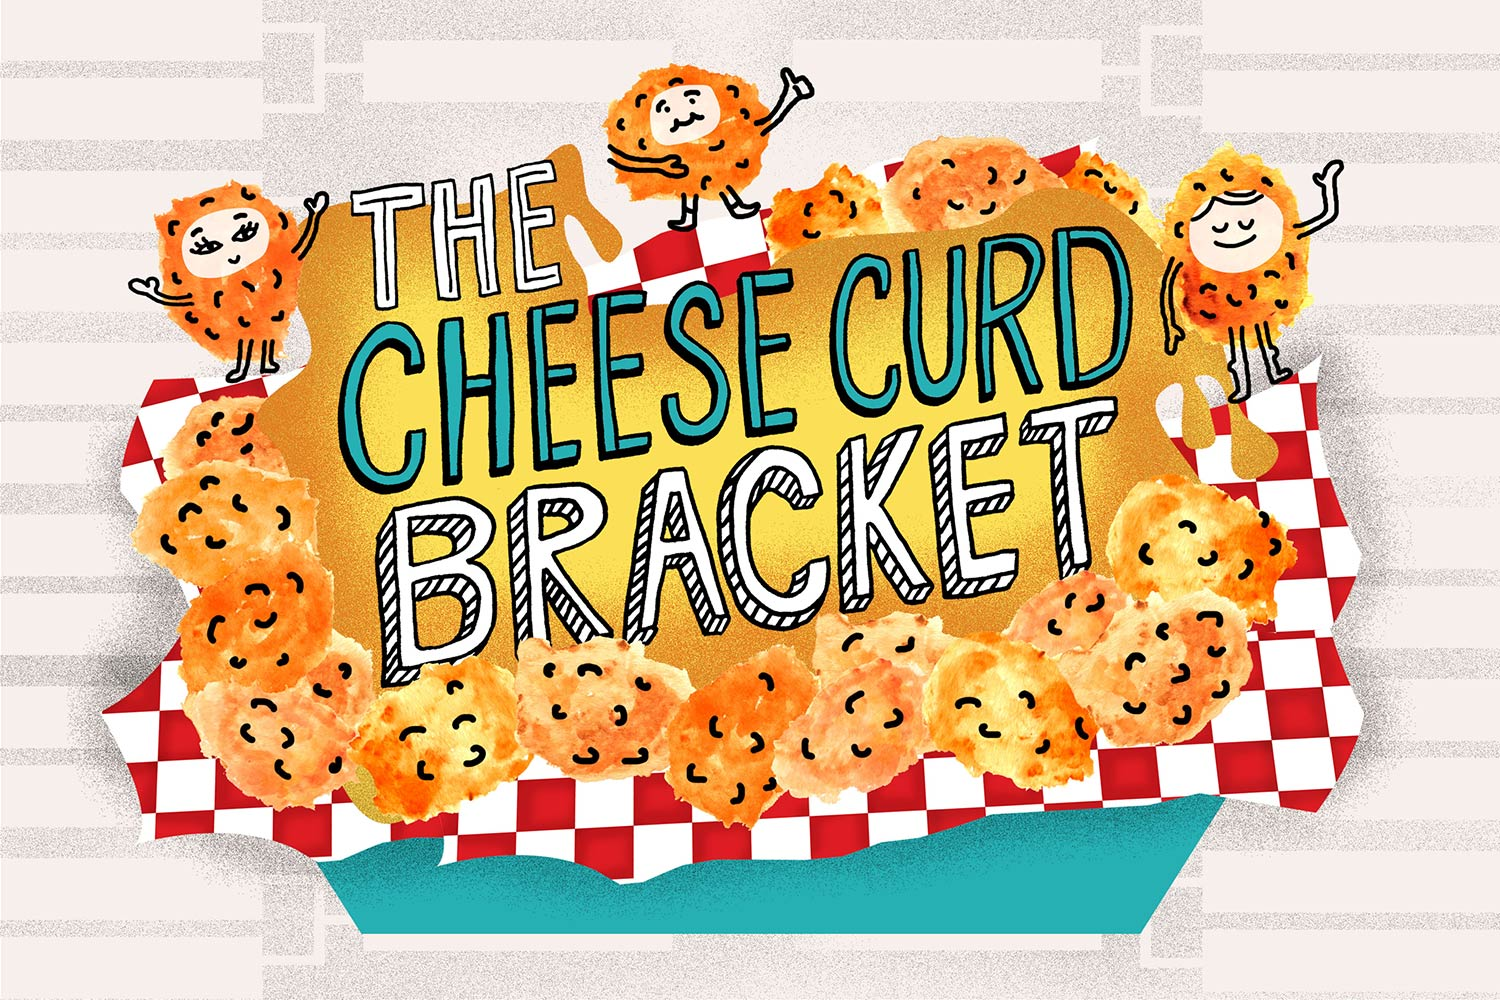 Cheese Curd Bracket Introduction